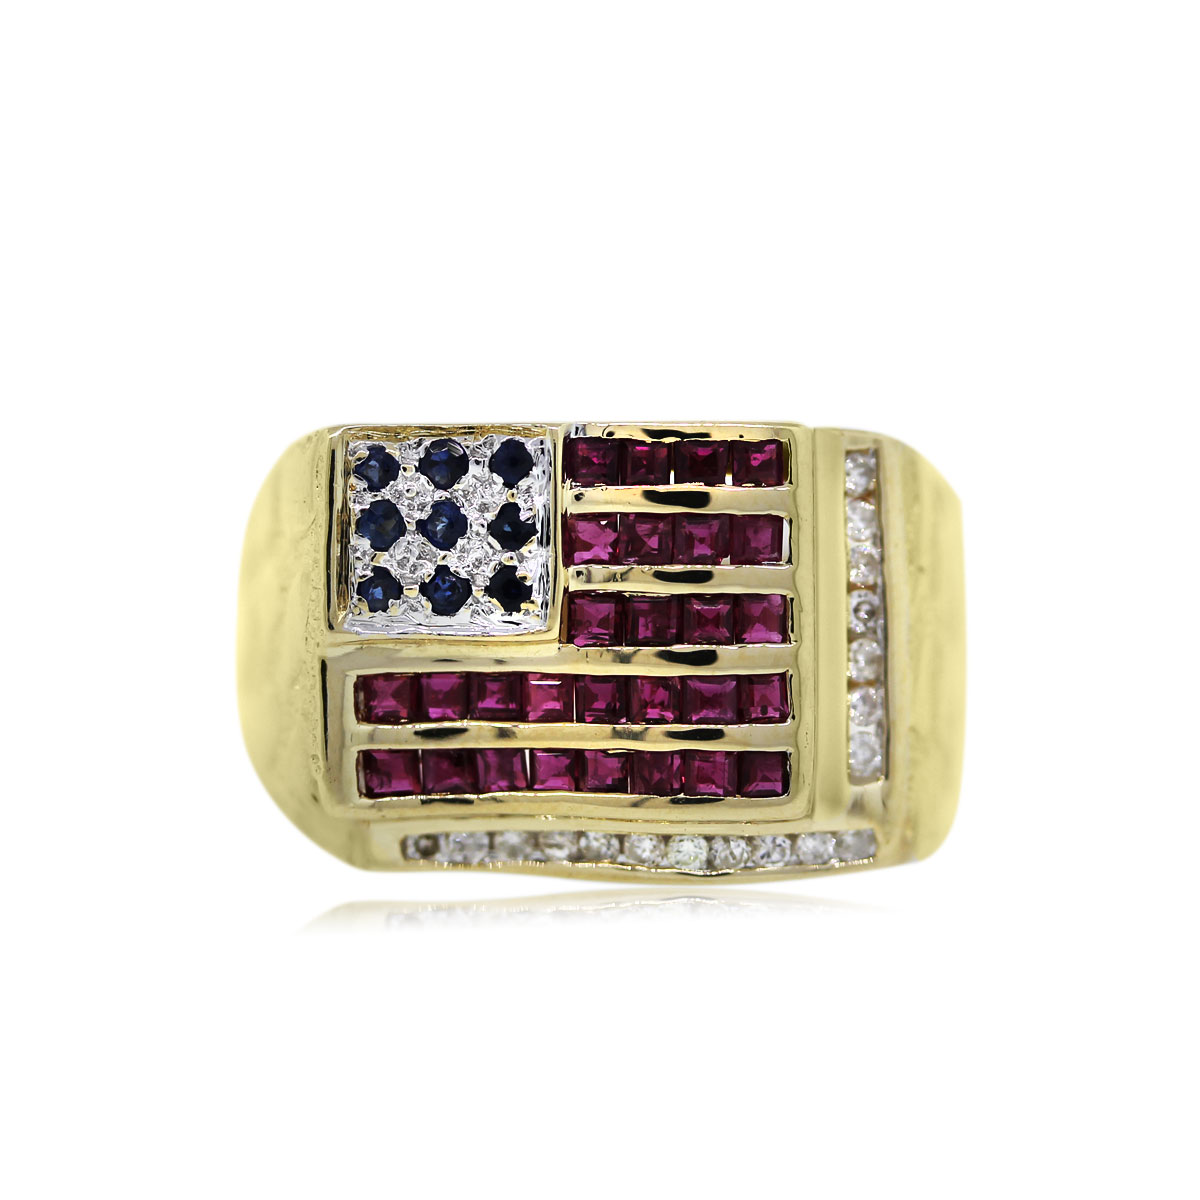 You are Viewing this Sapphire, Ruby and Diamond American Flag Ring!